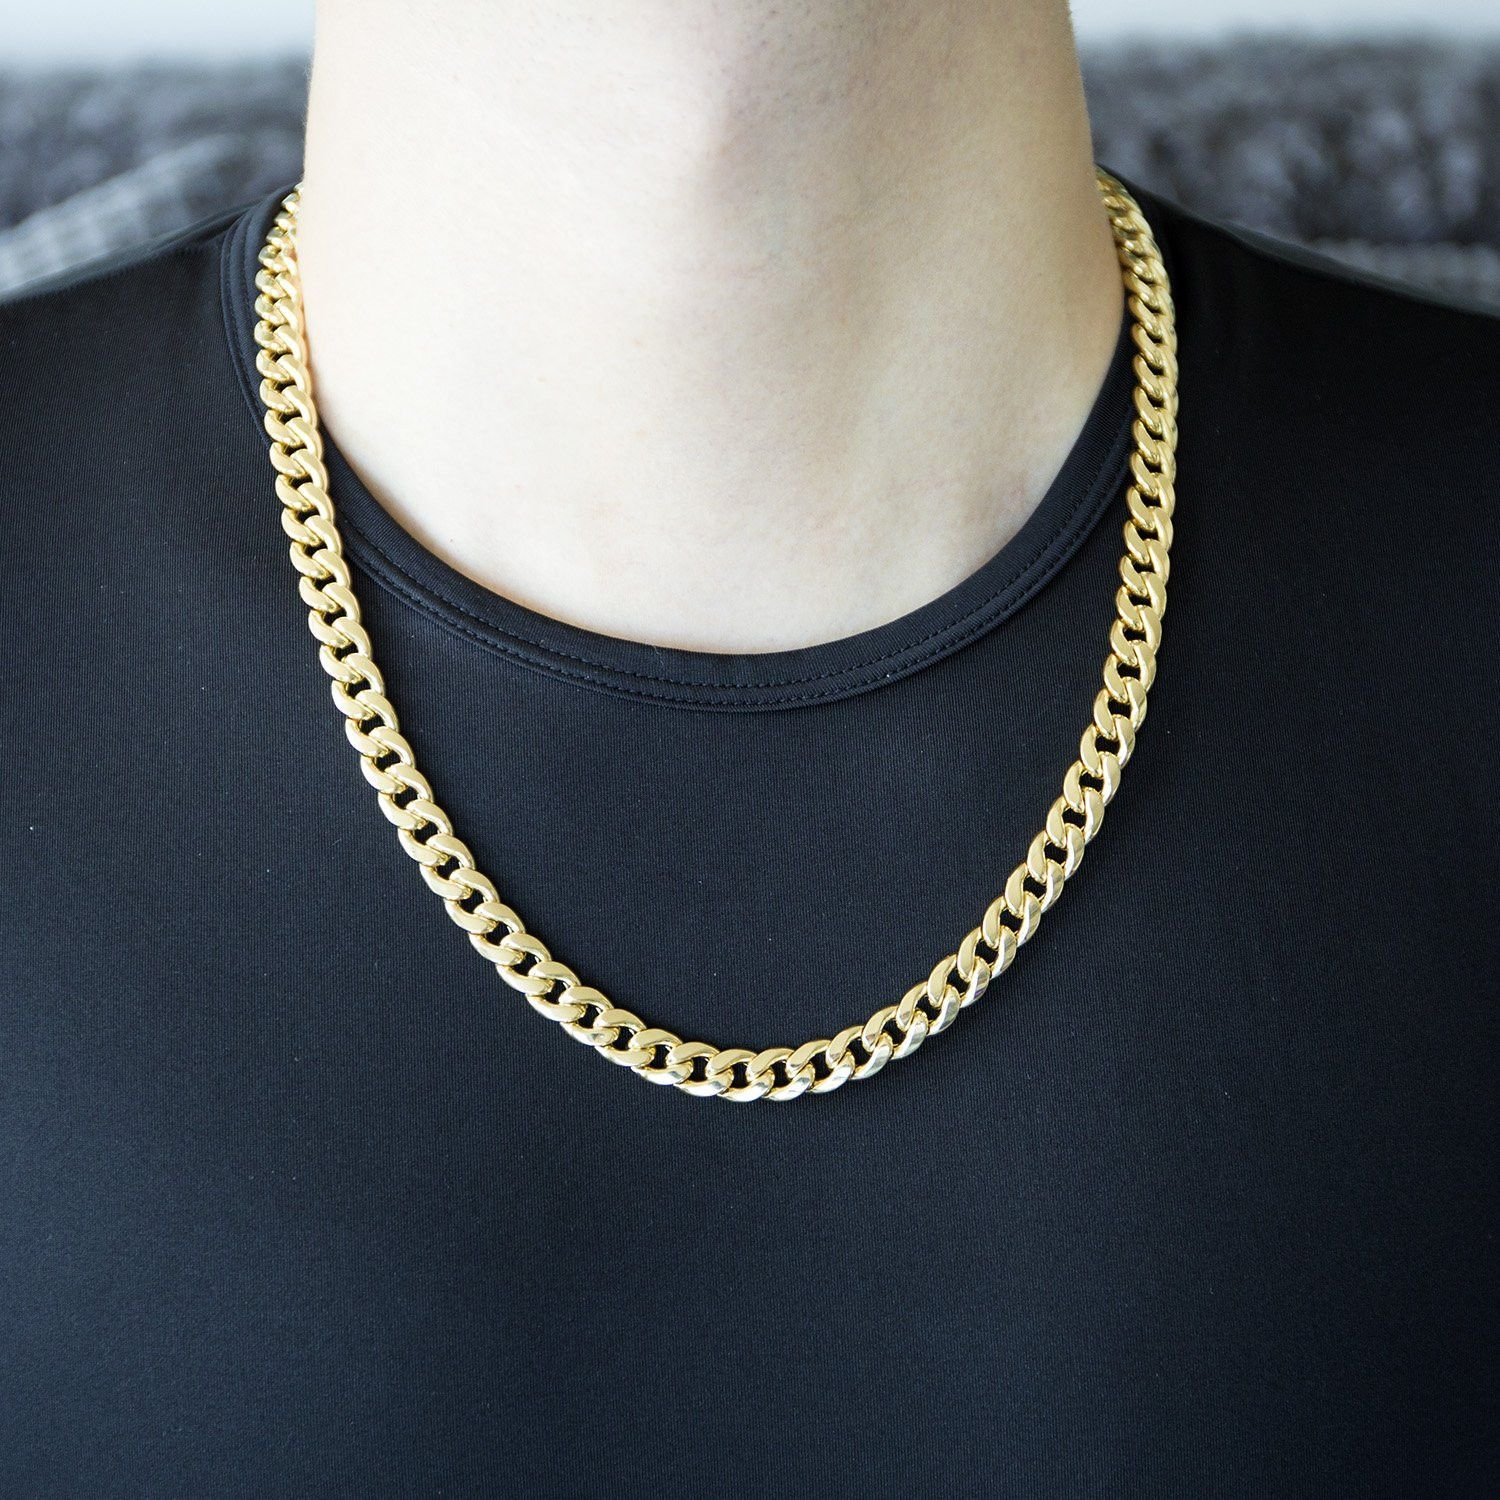 Gucci Link Chain For Sale Ebay >> 10k Yellow Gold Hollow Links 9mm Miami Cuban Link Chain Necklace 24